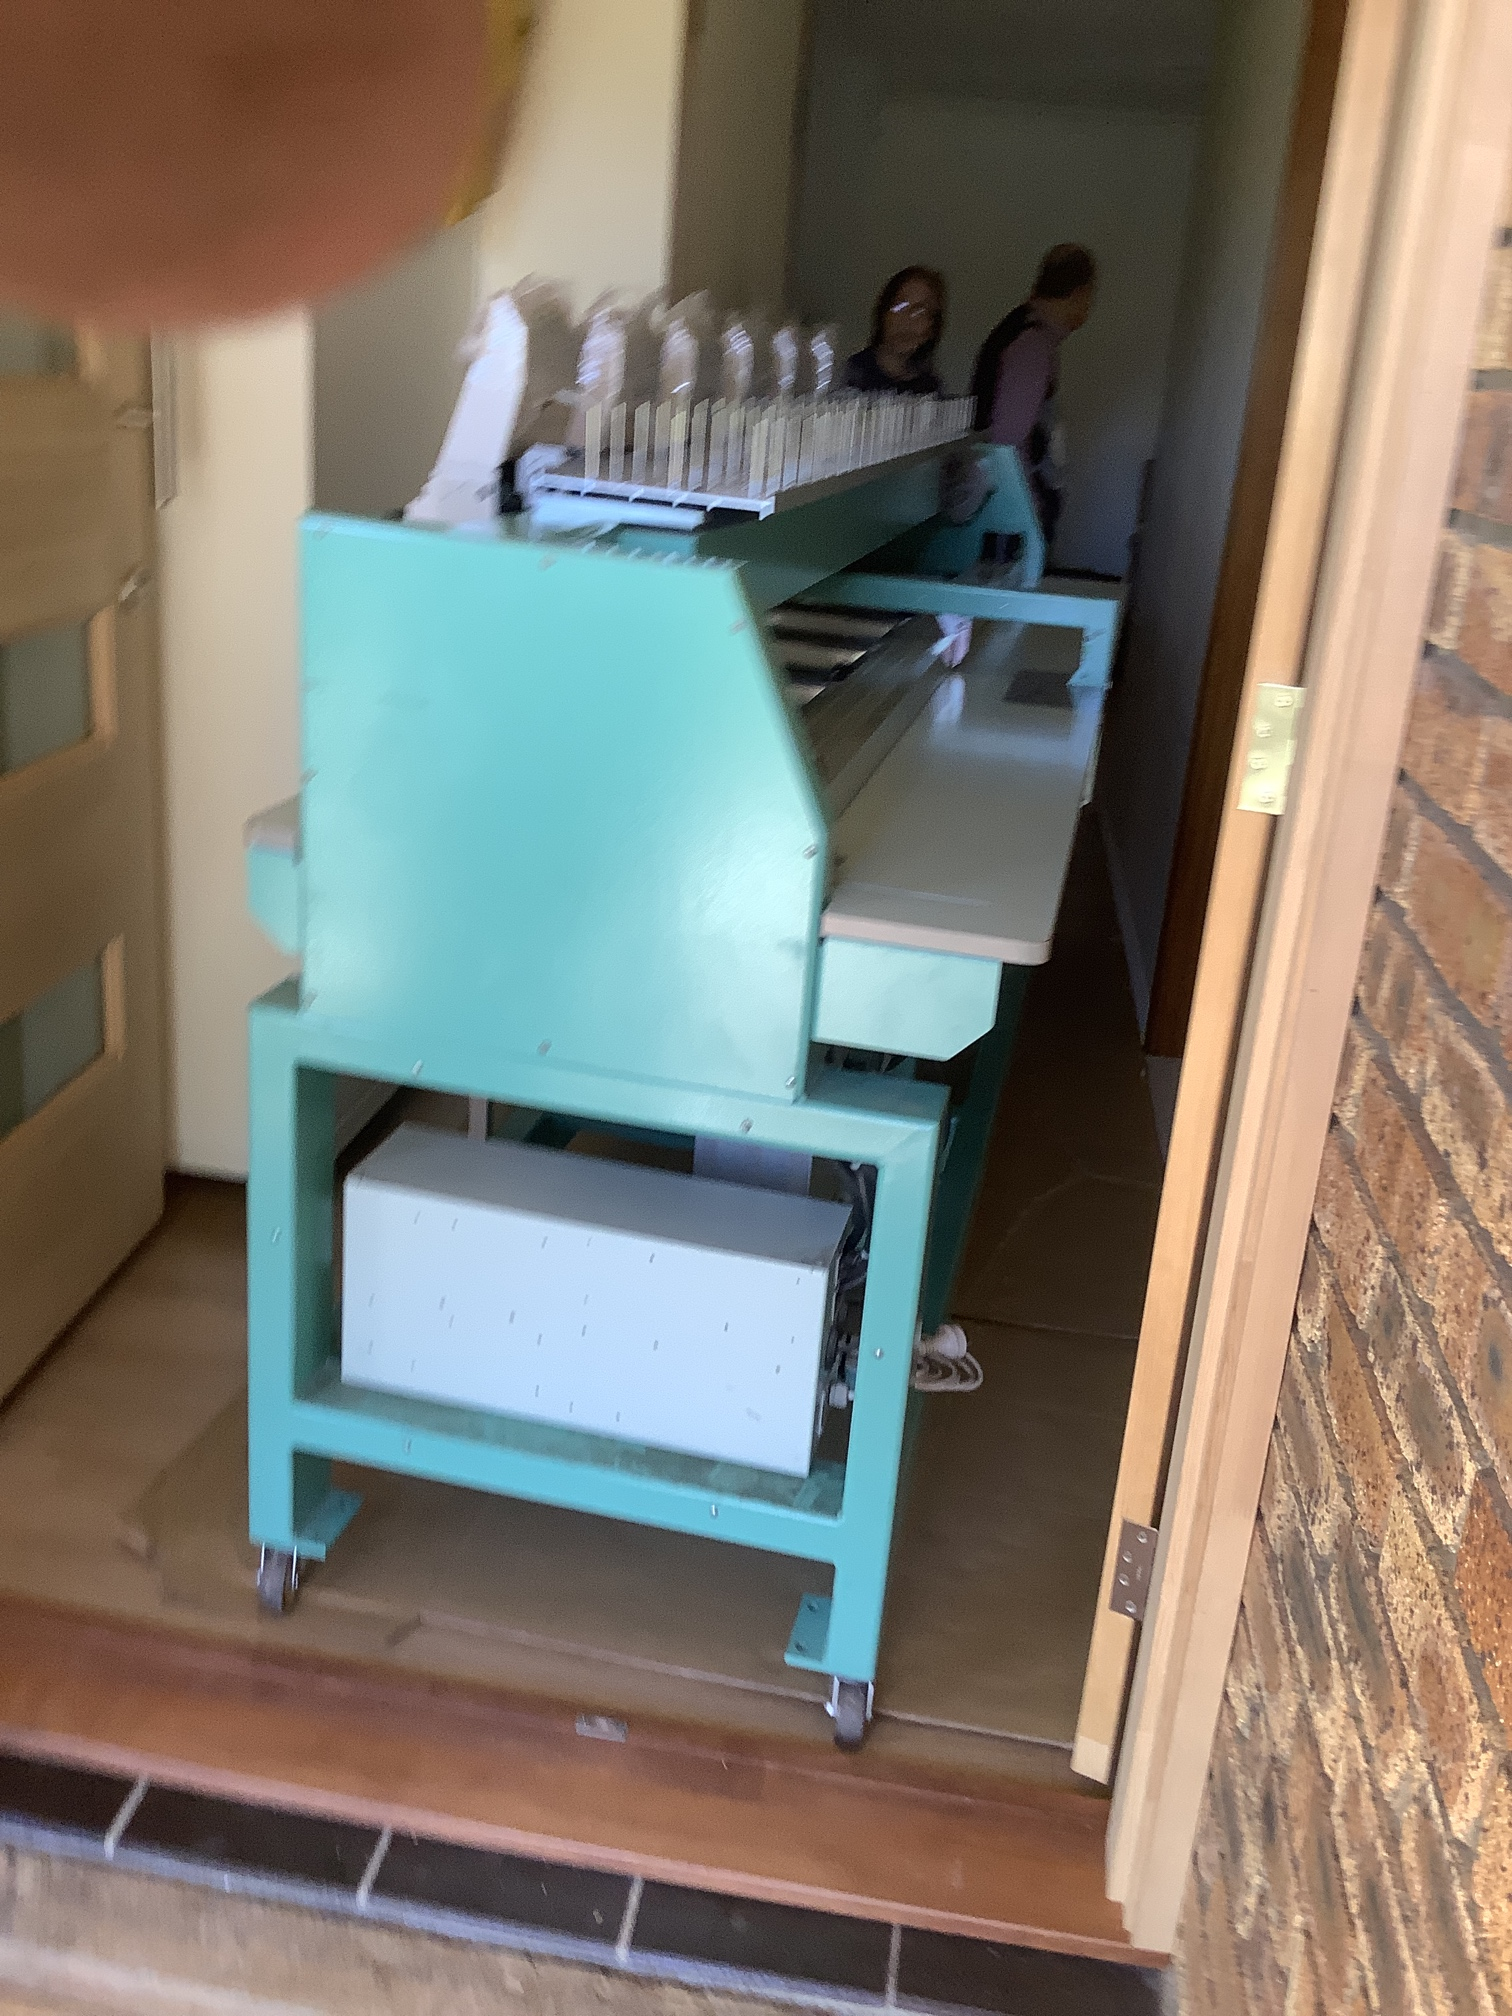 Sewing machine unloaded